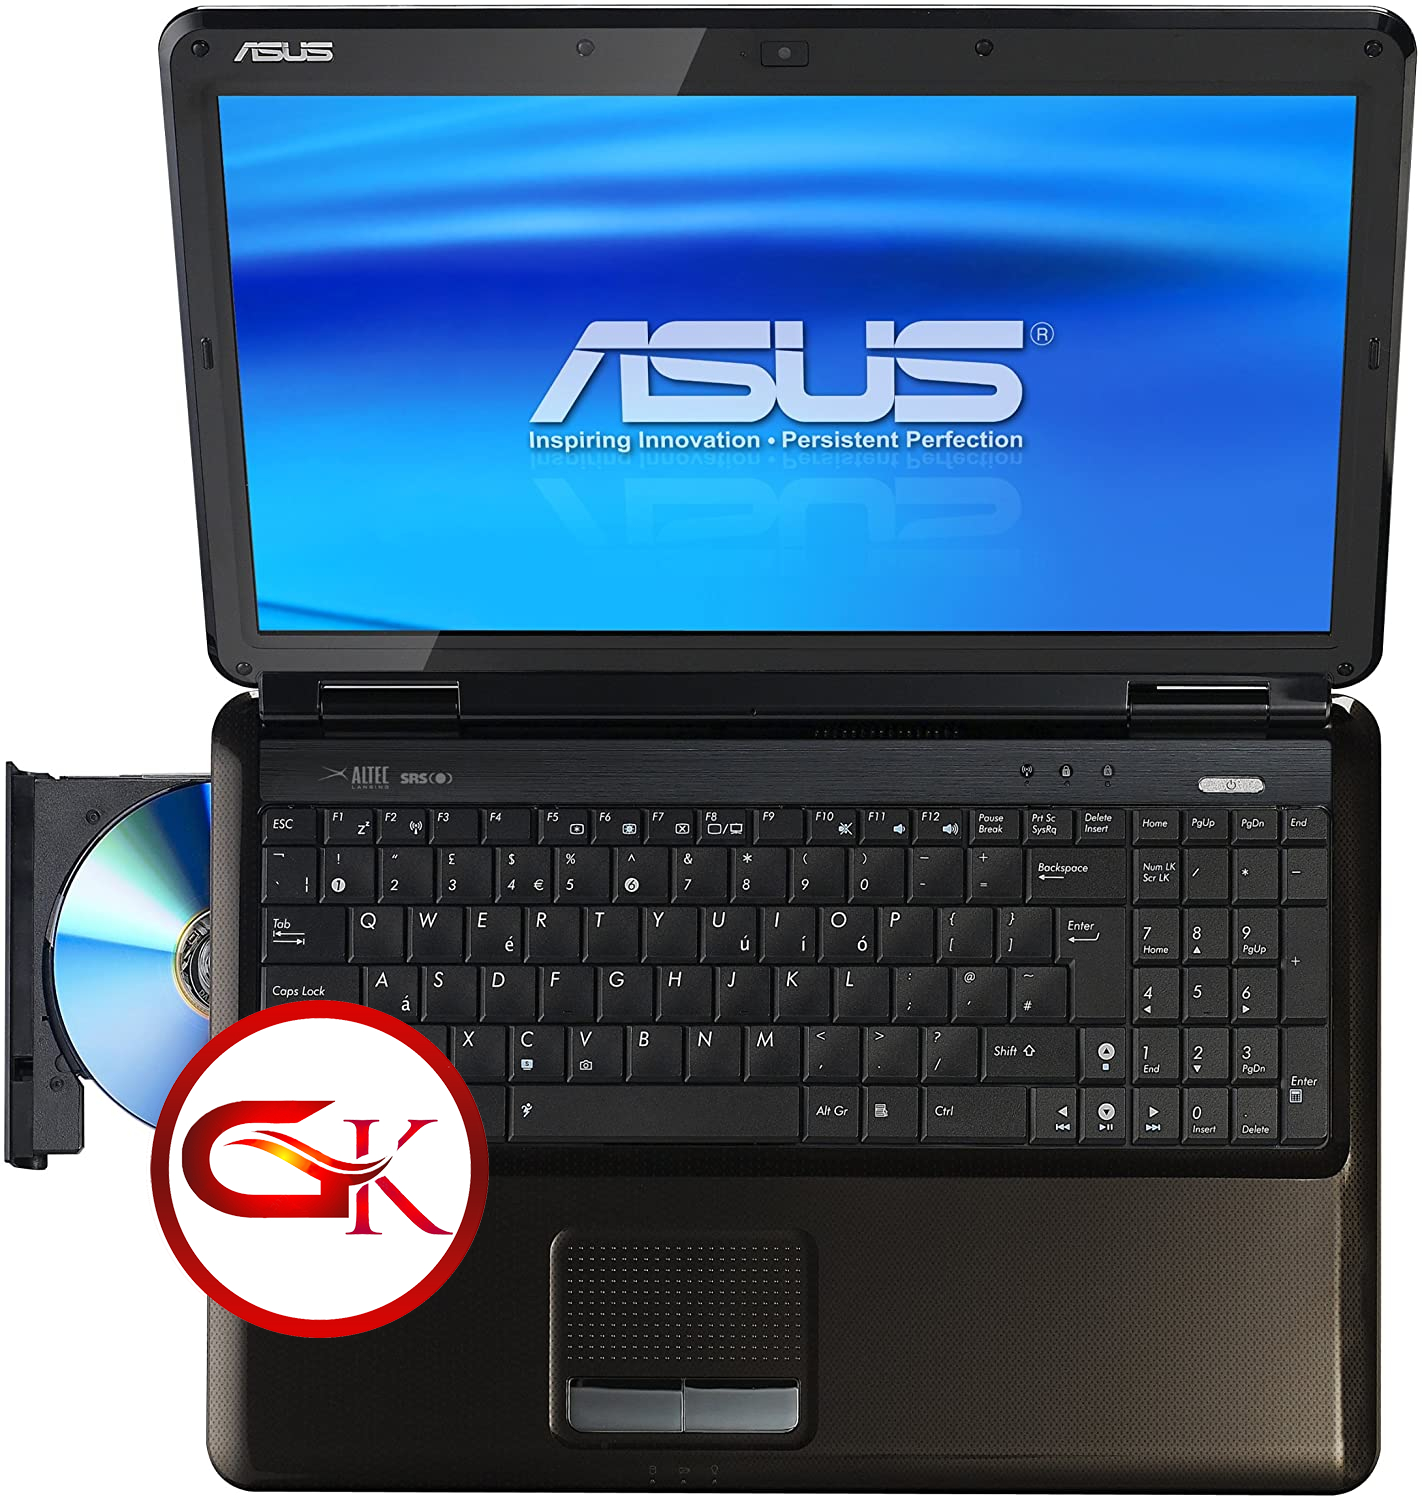 Asus U50F | CPU Core i3 650m | RAM 4G | 500G HDD | Intel HD Graphic